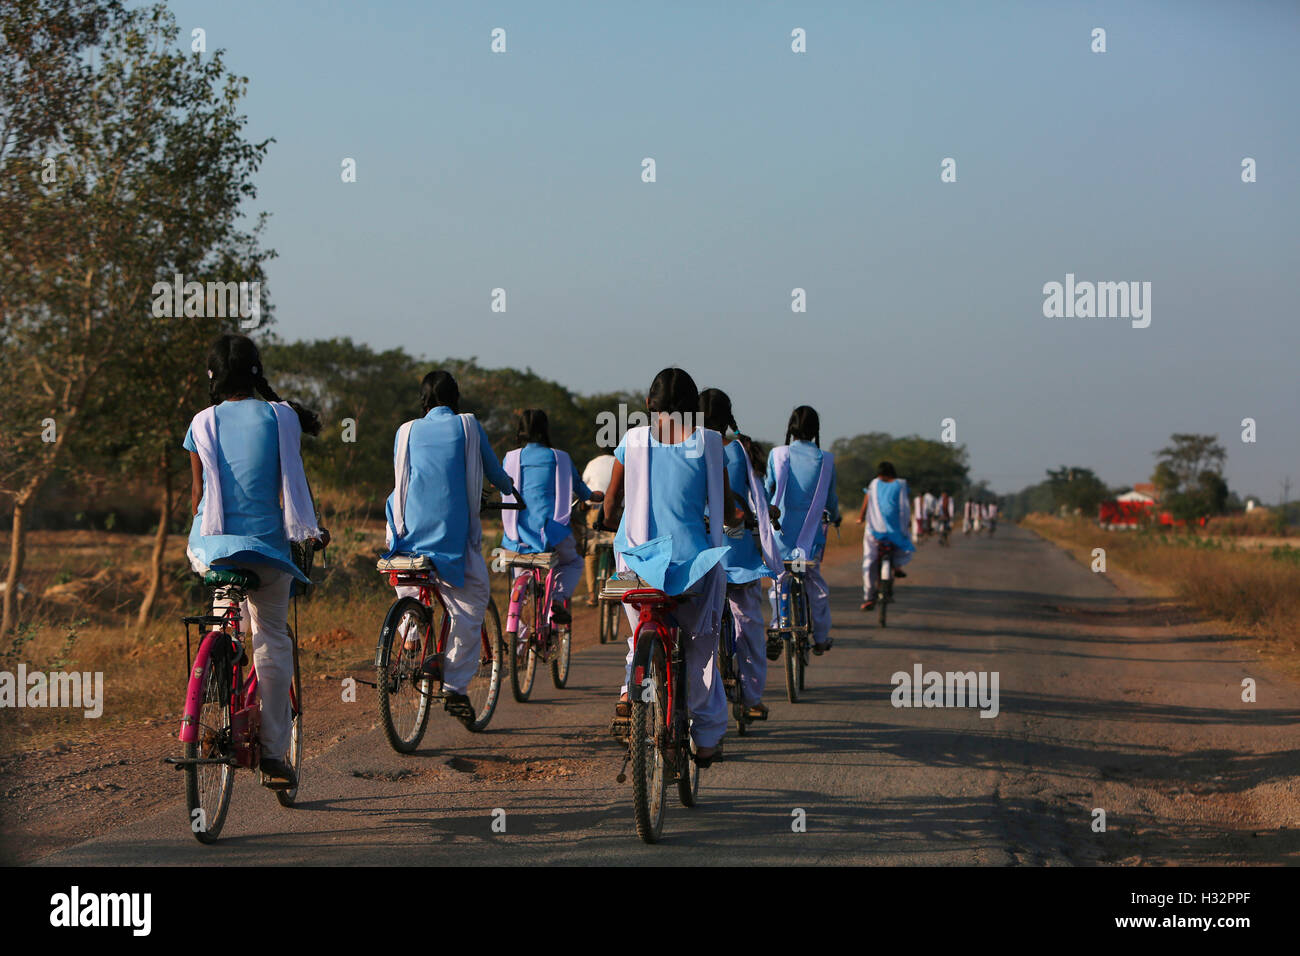 School Girls, Khairmal Village, Saraipali Tahsil, Mahasamund District, Chattisgarh, India - Stock Image